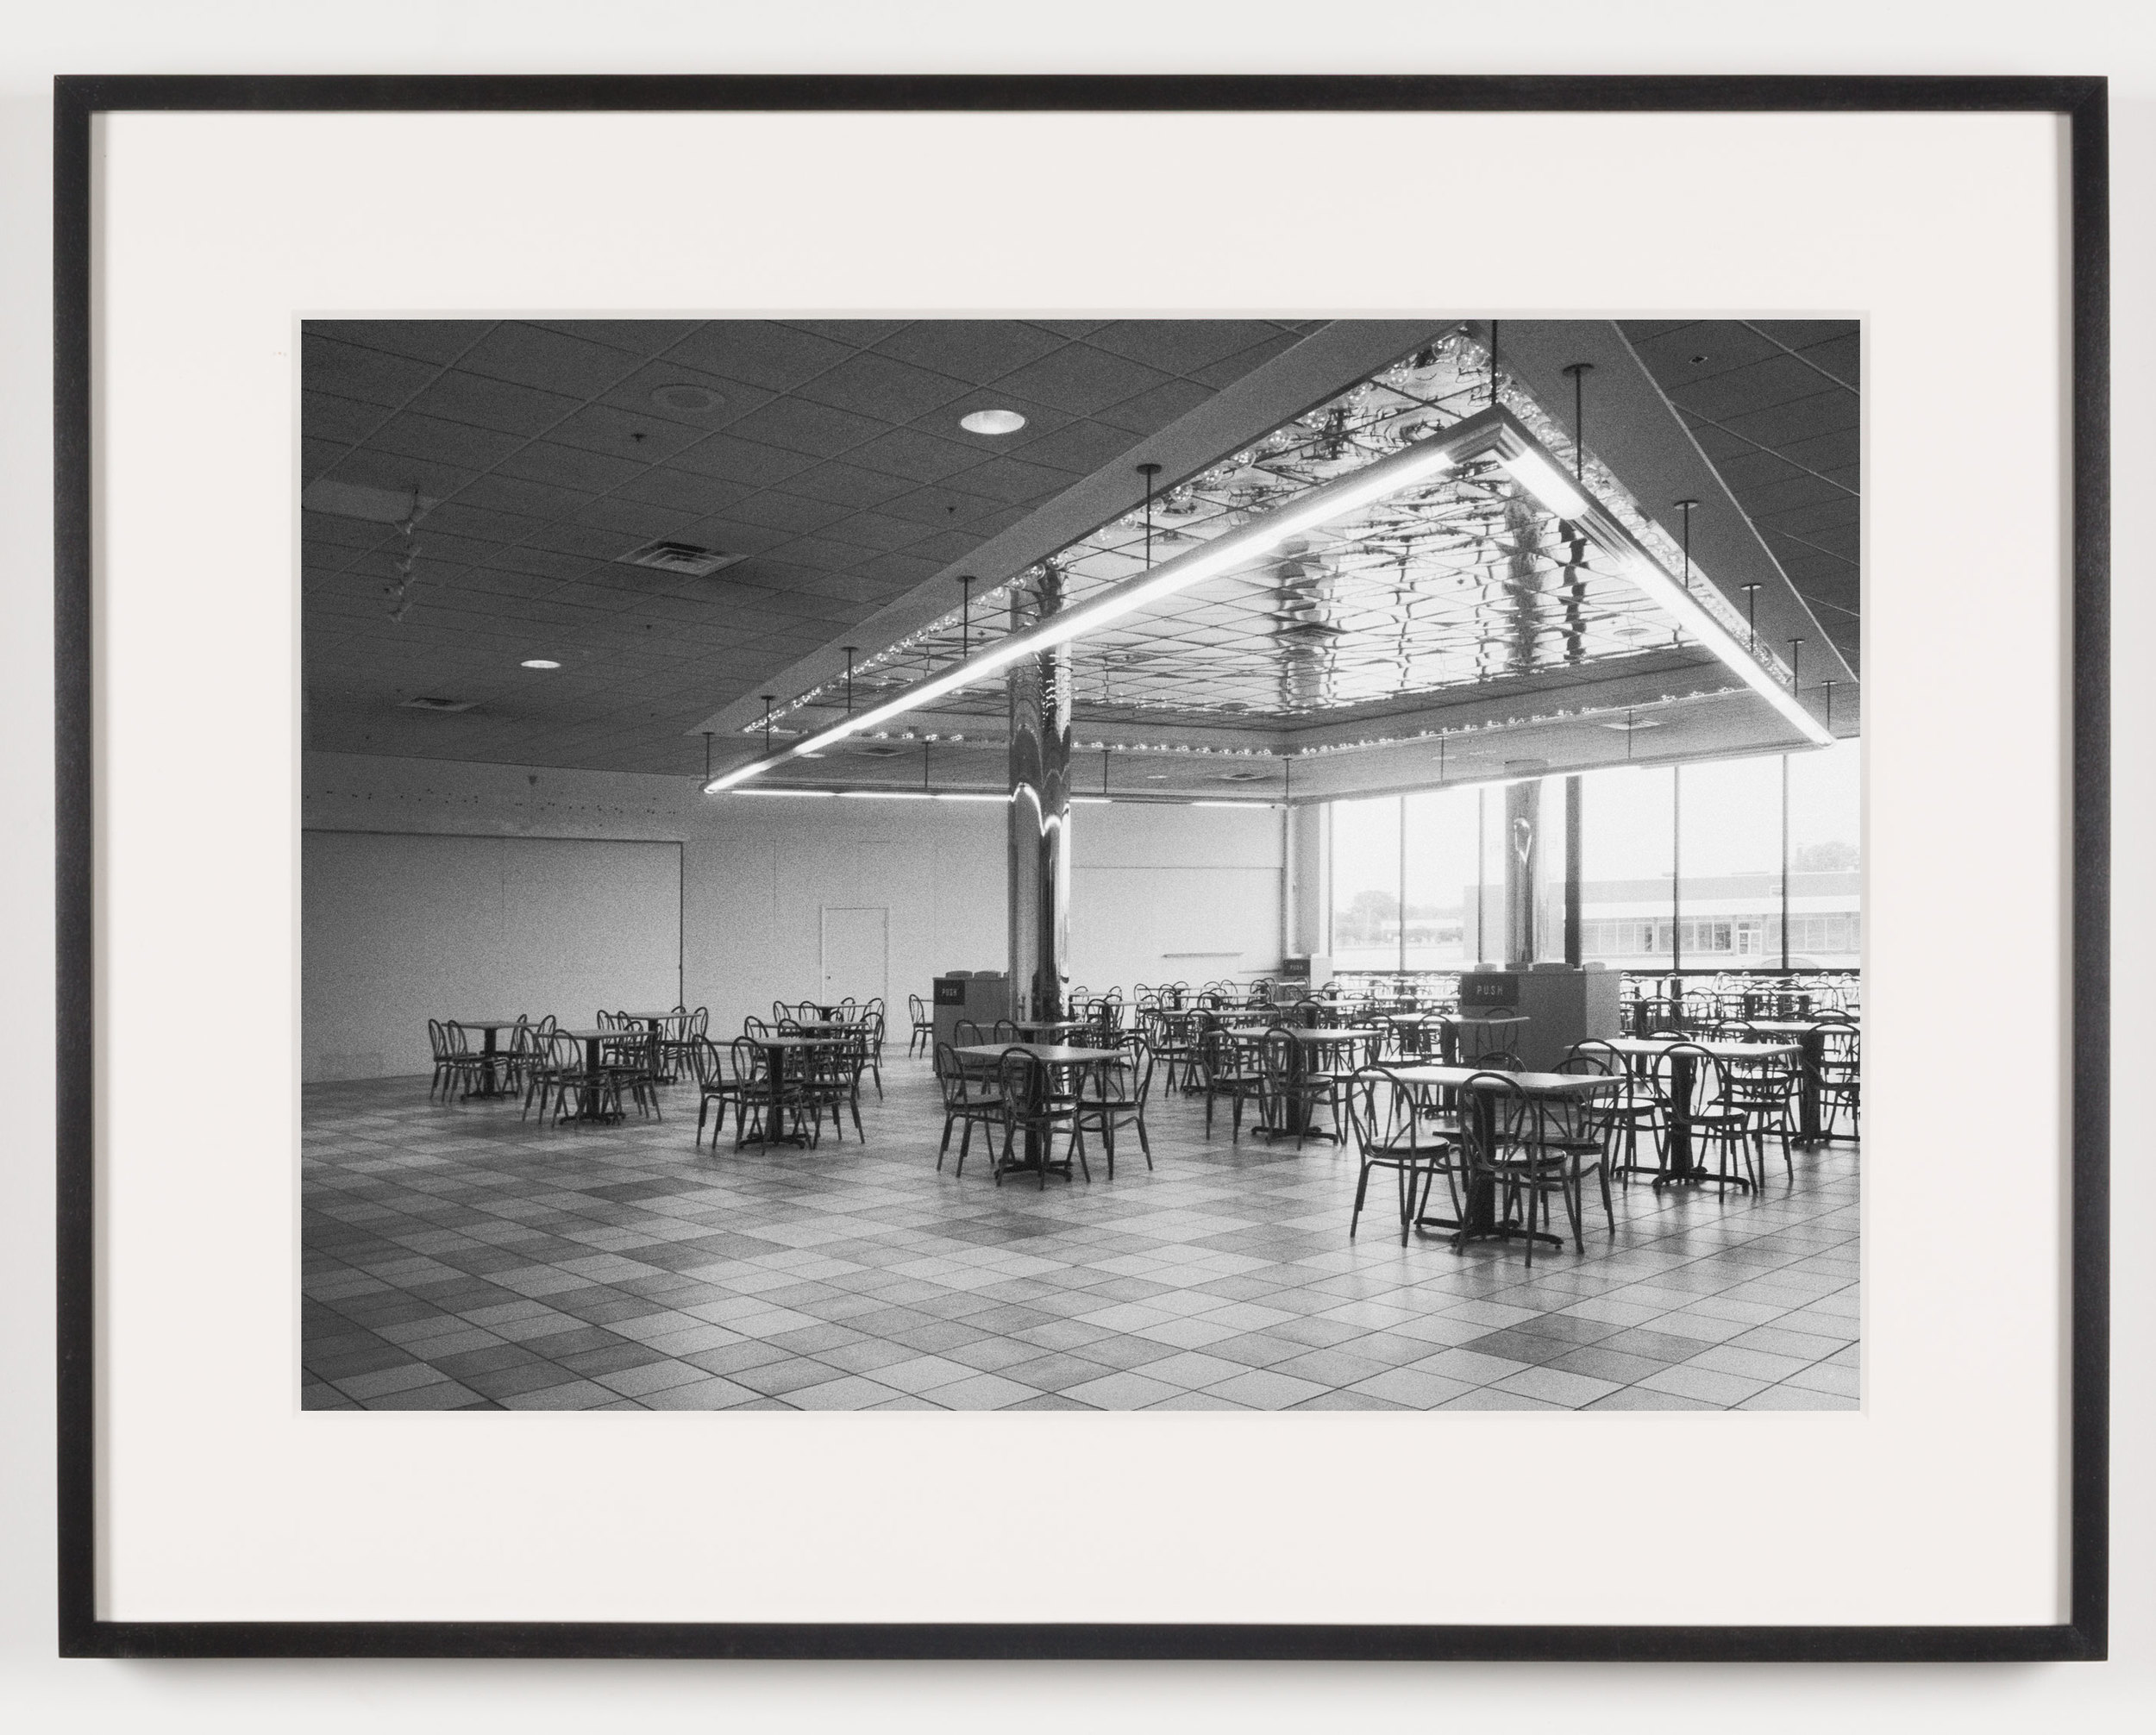 Southwyck Mall (View of Food Court), Toledo, OH, Est. 1972, Demo. 2009    2011   Epson Ultrachrome K3 archival ink jet print on Hahnemühle Photo Rag paper  21 5/8 x 28 1/8 inches   A Diagram of Forces, 2011